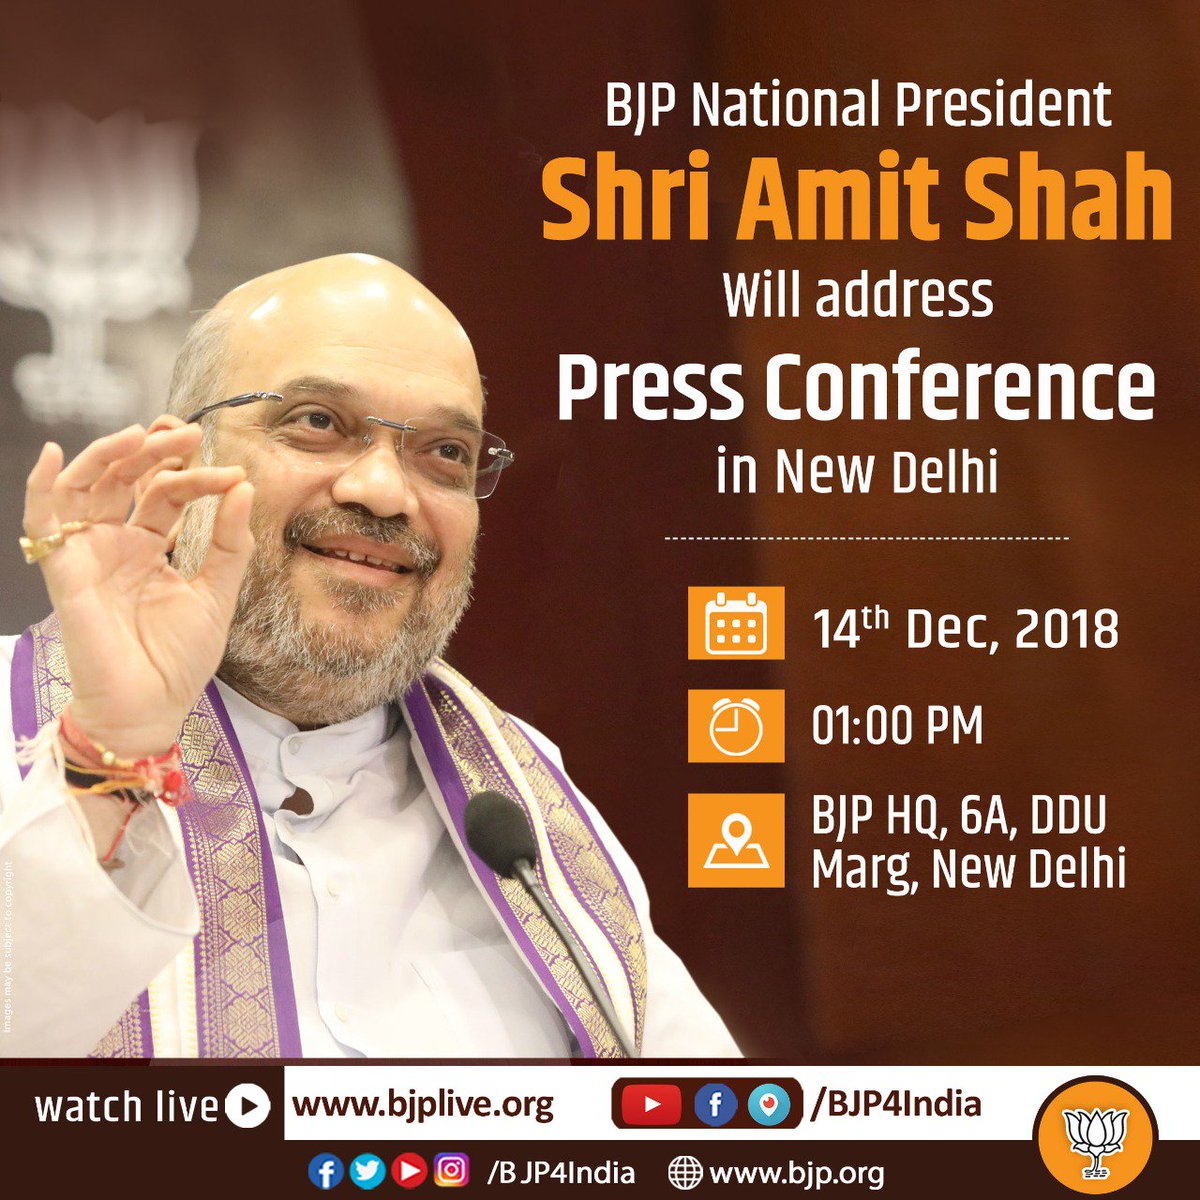 BJP National President Shri @AmitShah will address a press conference at 1 pm today at BJP HQ. Watch at https://t.co/vpP0MI6iTu and https://t.co/jtwD1yPhm4.